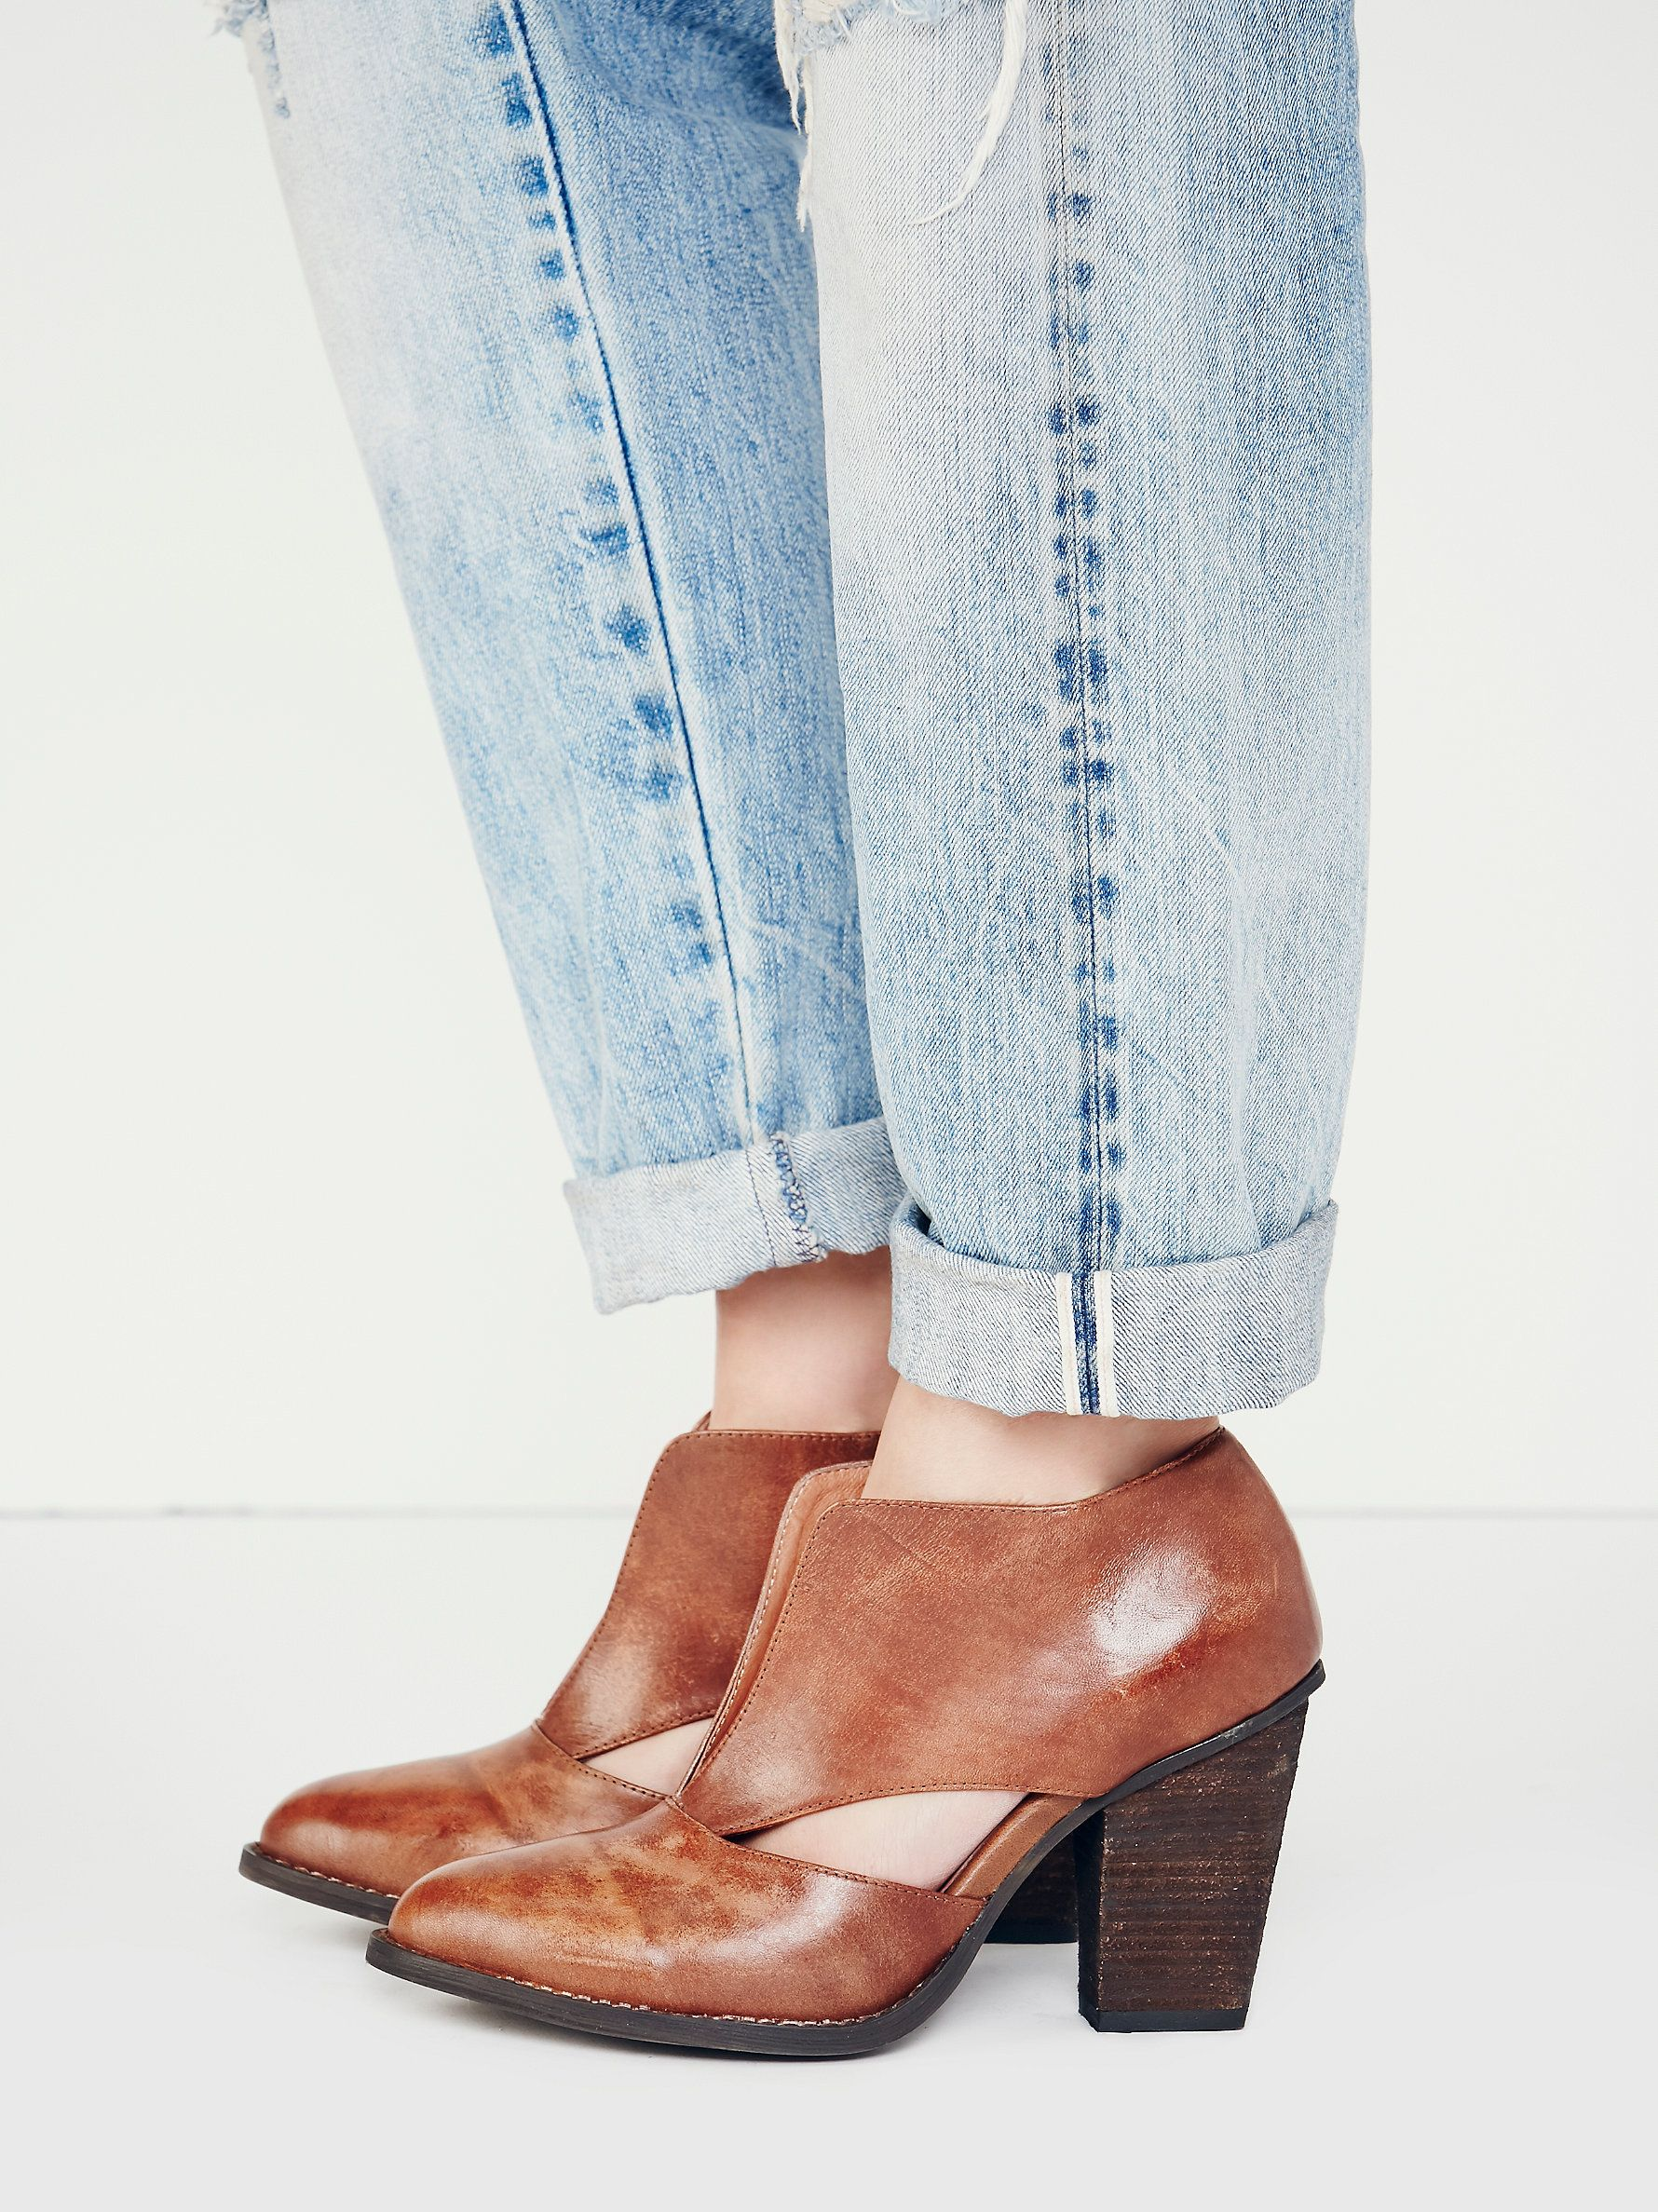 Deep V Ankle Boot   Suede deep-V heeled ankle boots with cutout detailing at each side. Rubber sole.